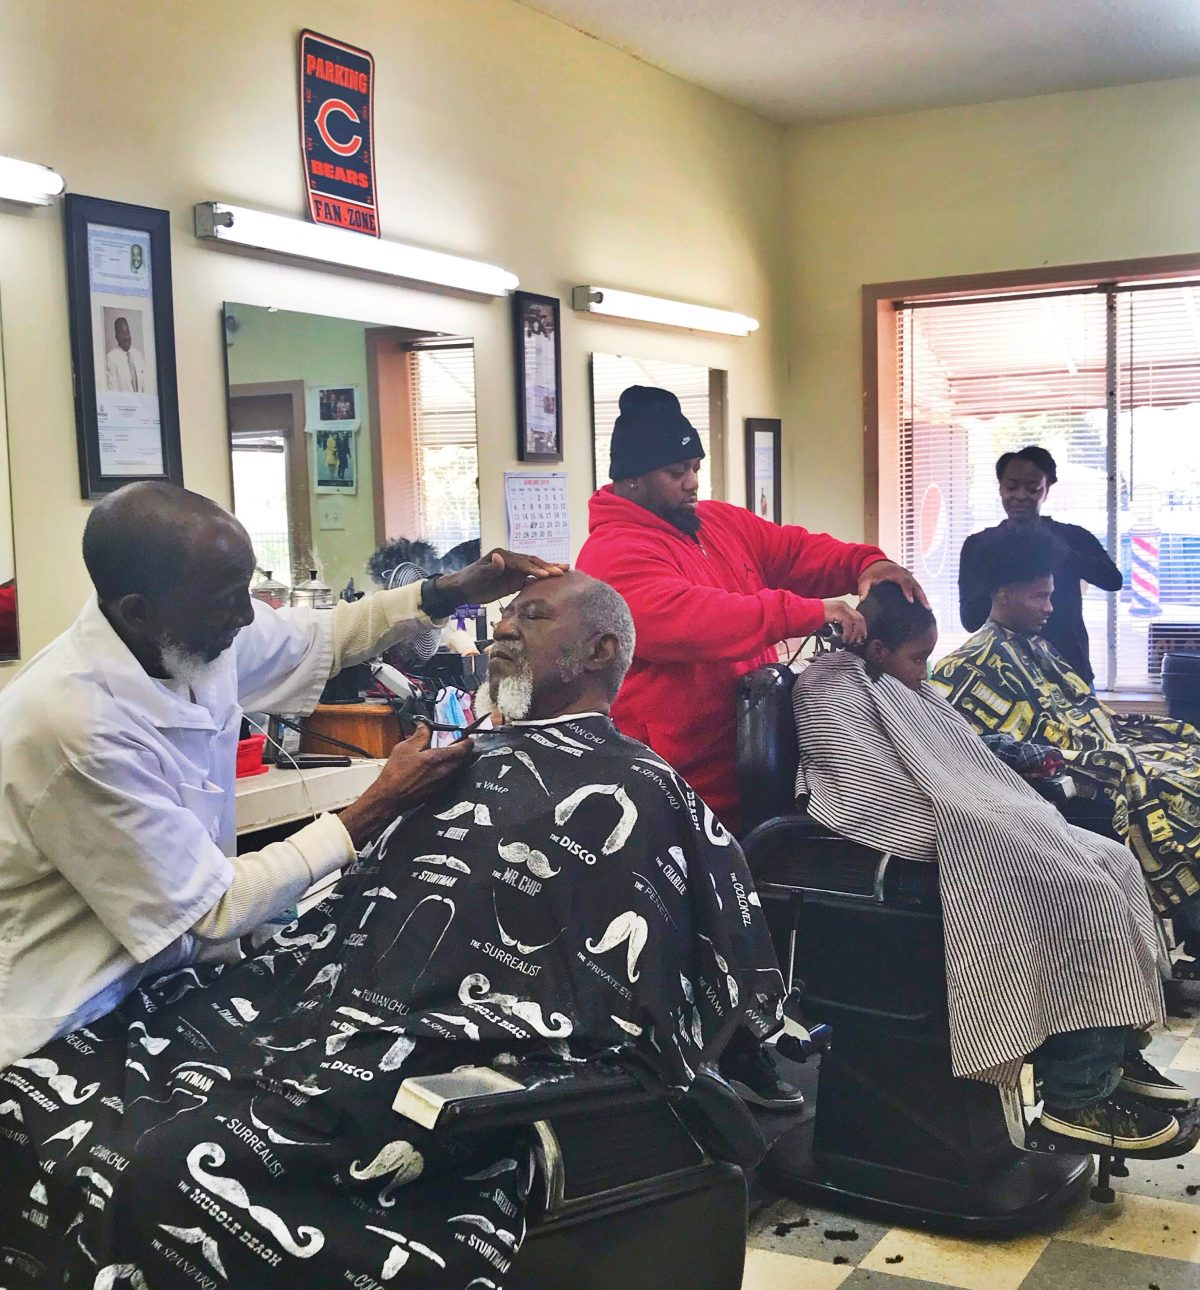 Joe and other barbers take care of clients at Roger's Barber Shop.